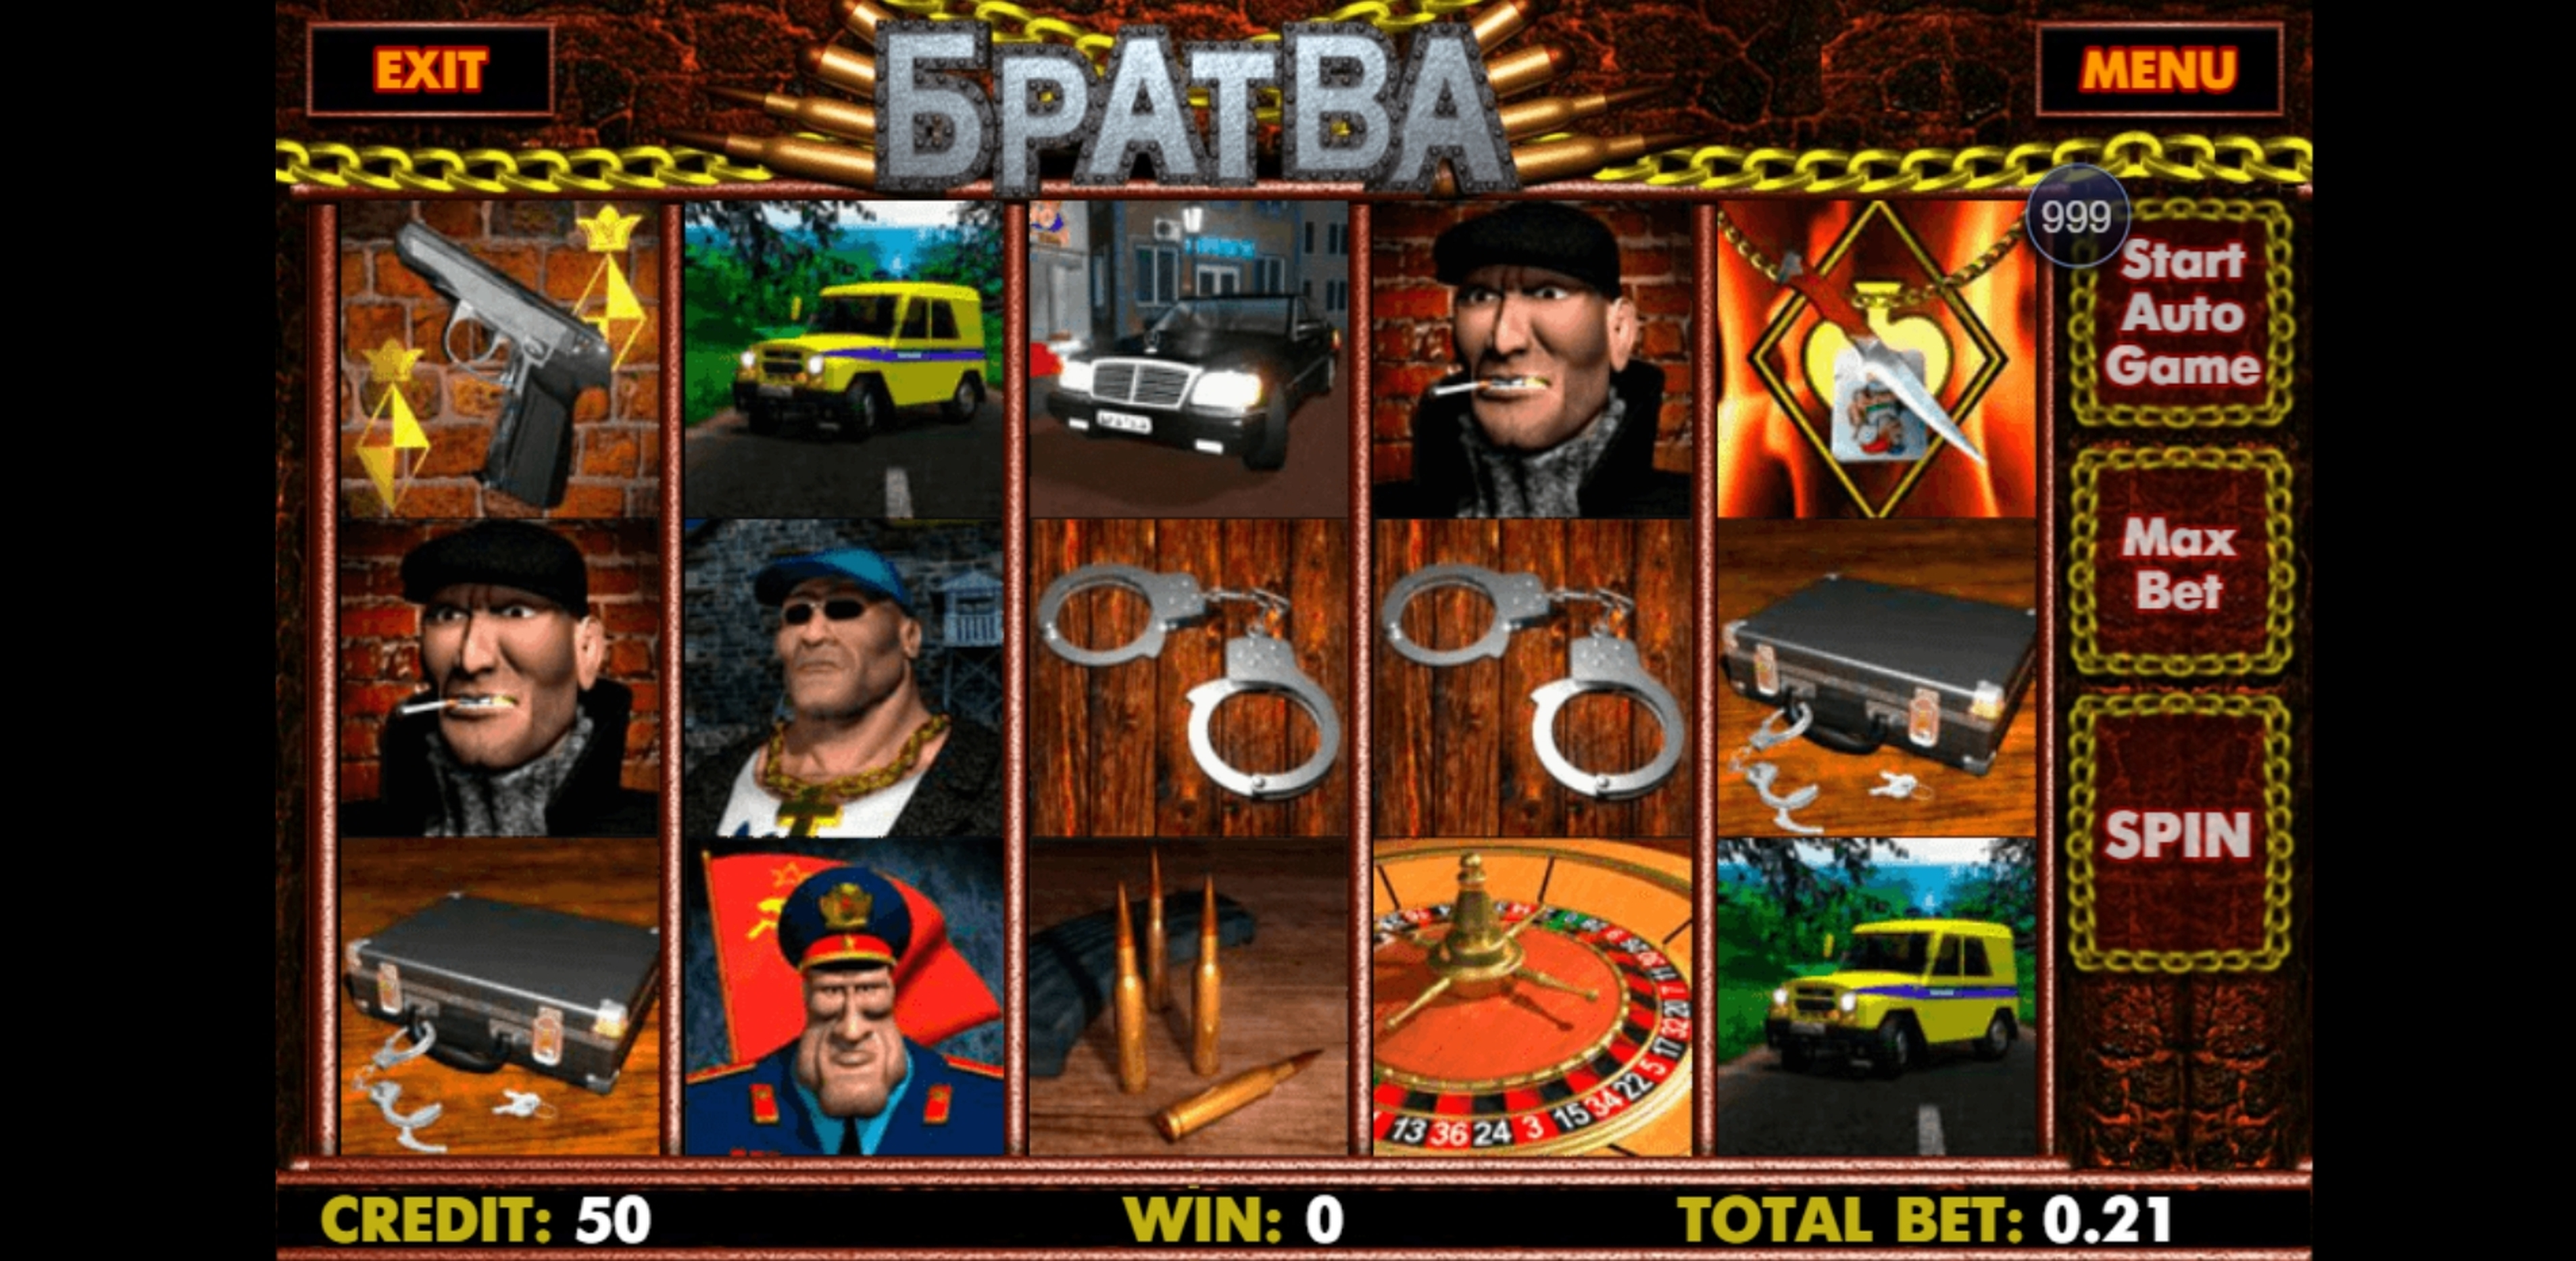 Reels in Bratva Slot Game by Unicum